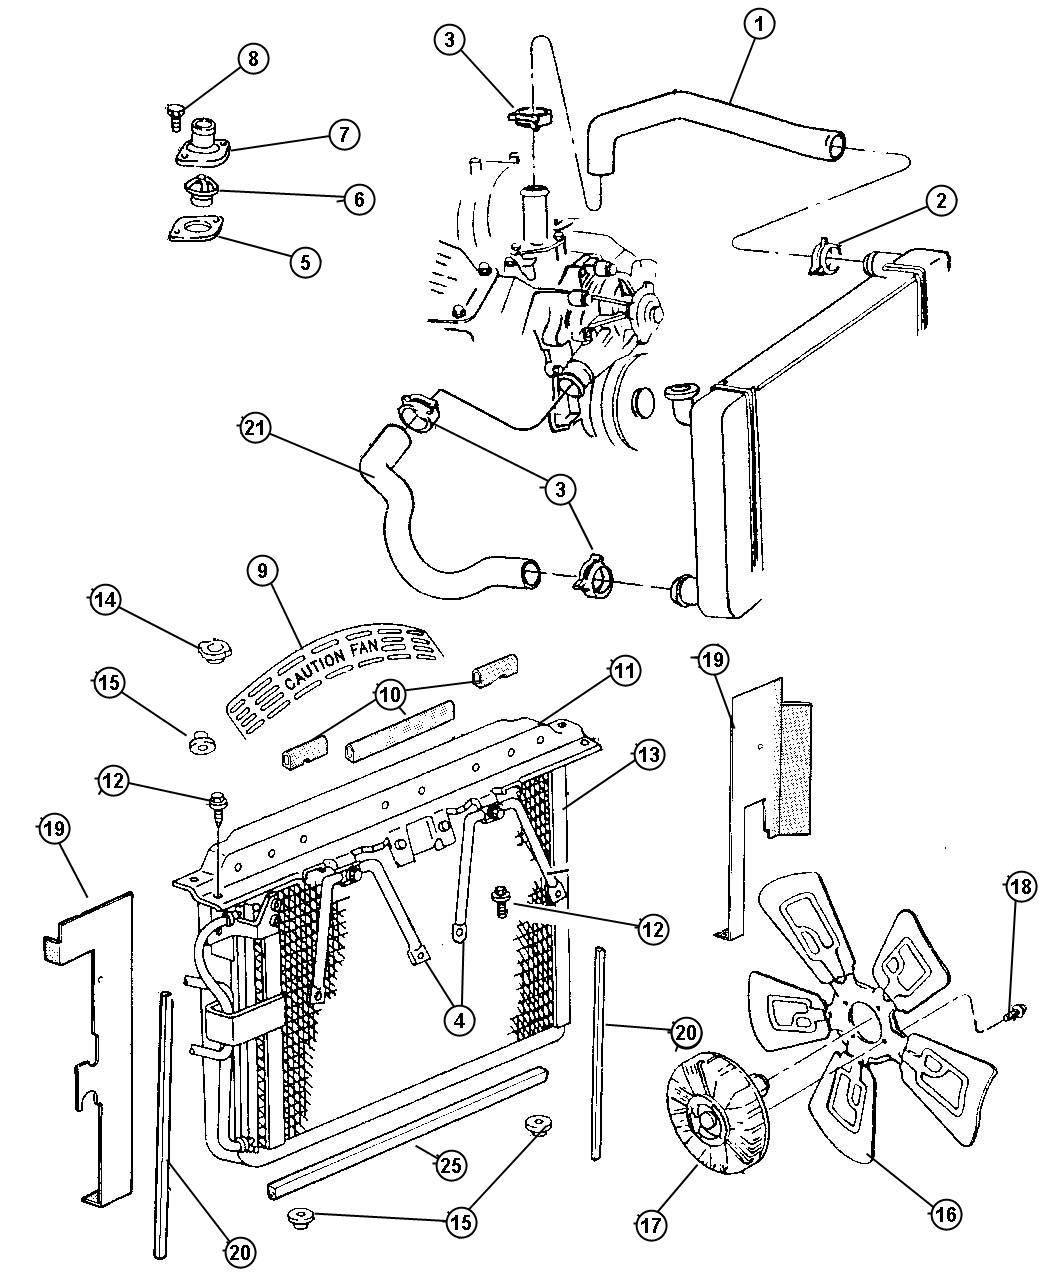 [DIAGRAM] Assembly Diagram Of Engine Cooling Fan Module